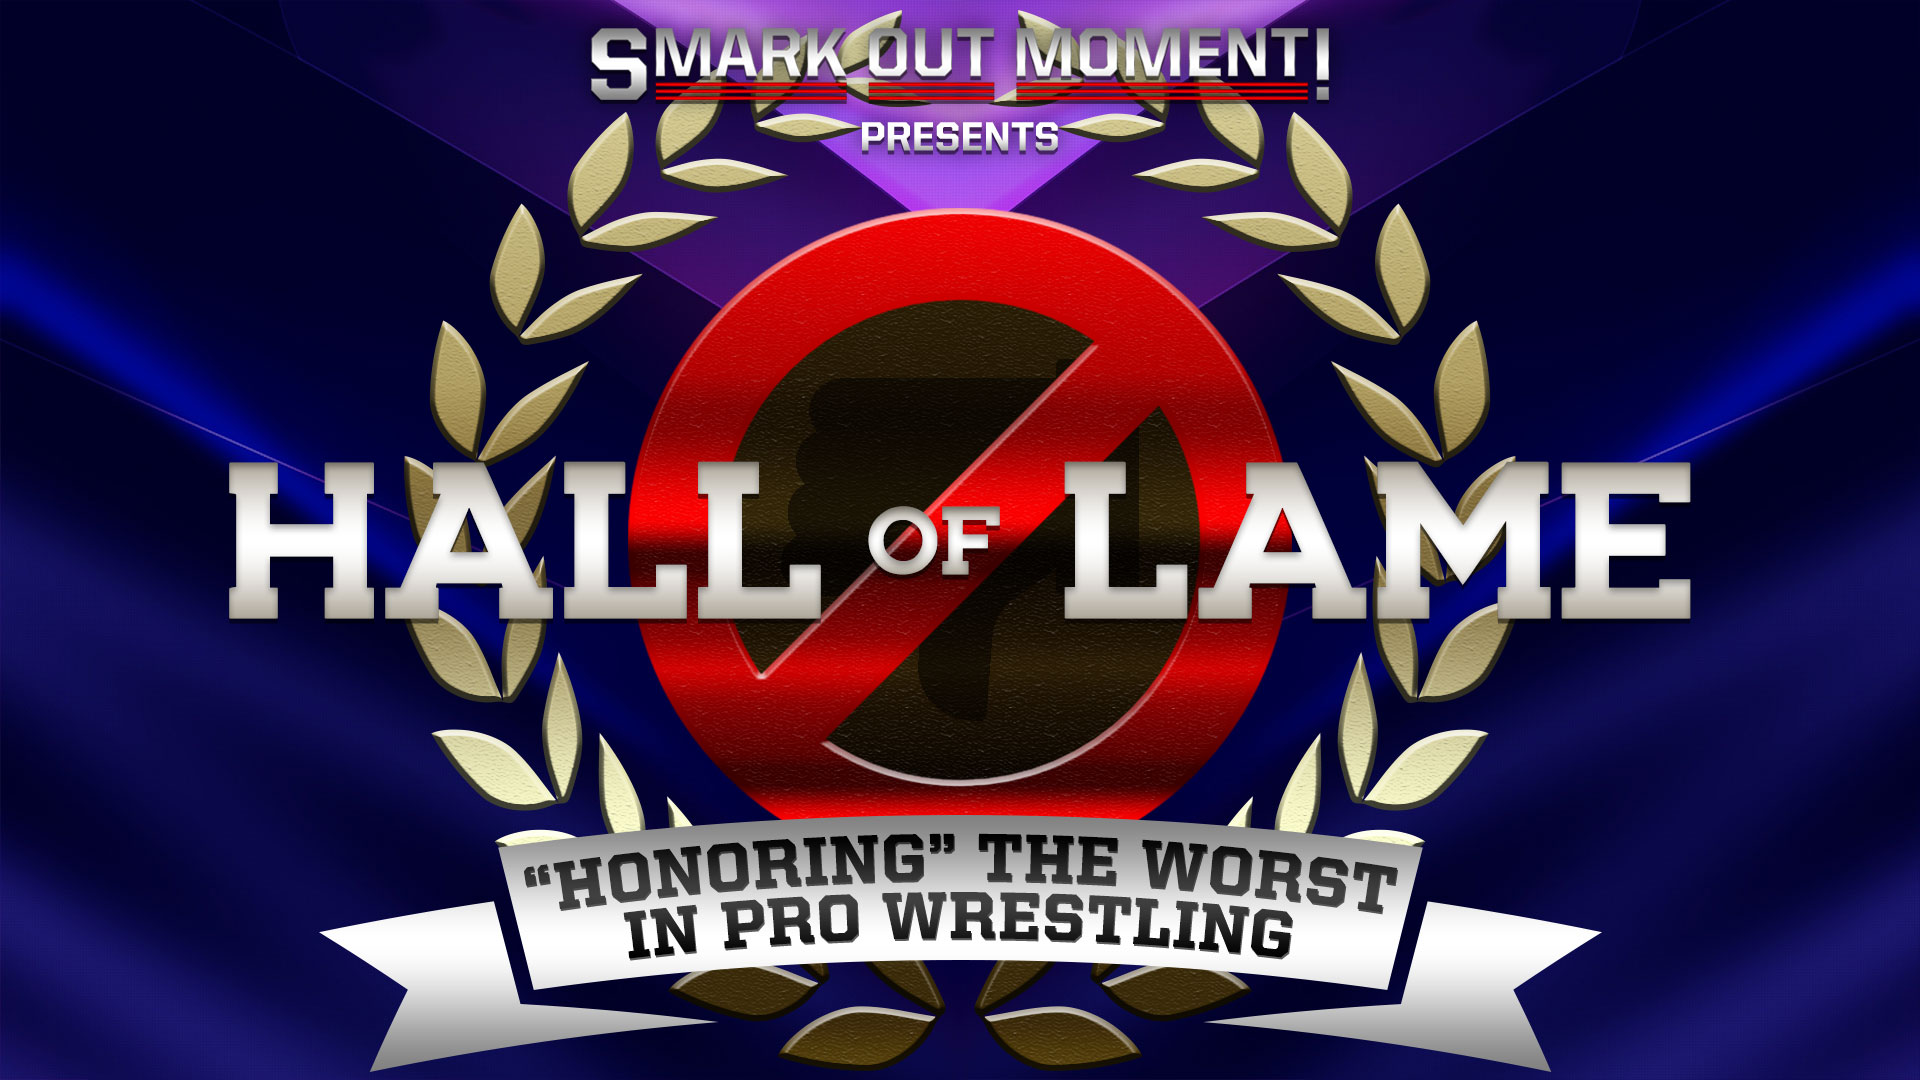 professional wrestling Hall of Lame worst ever